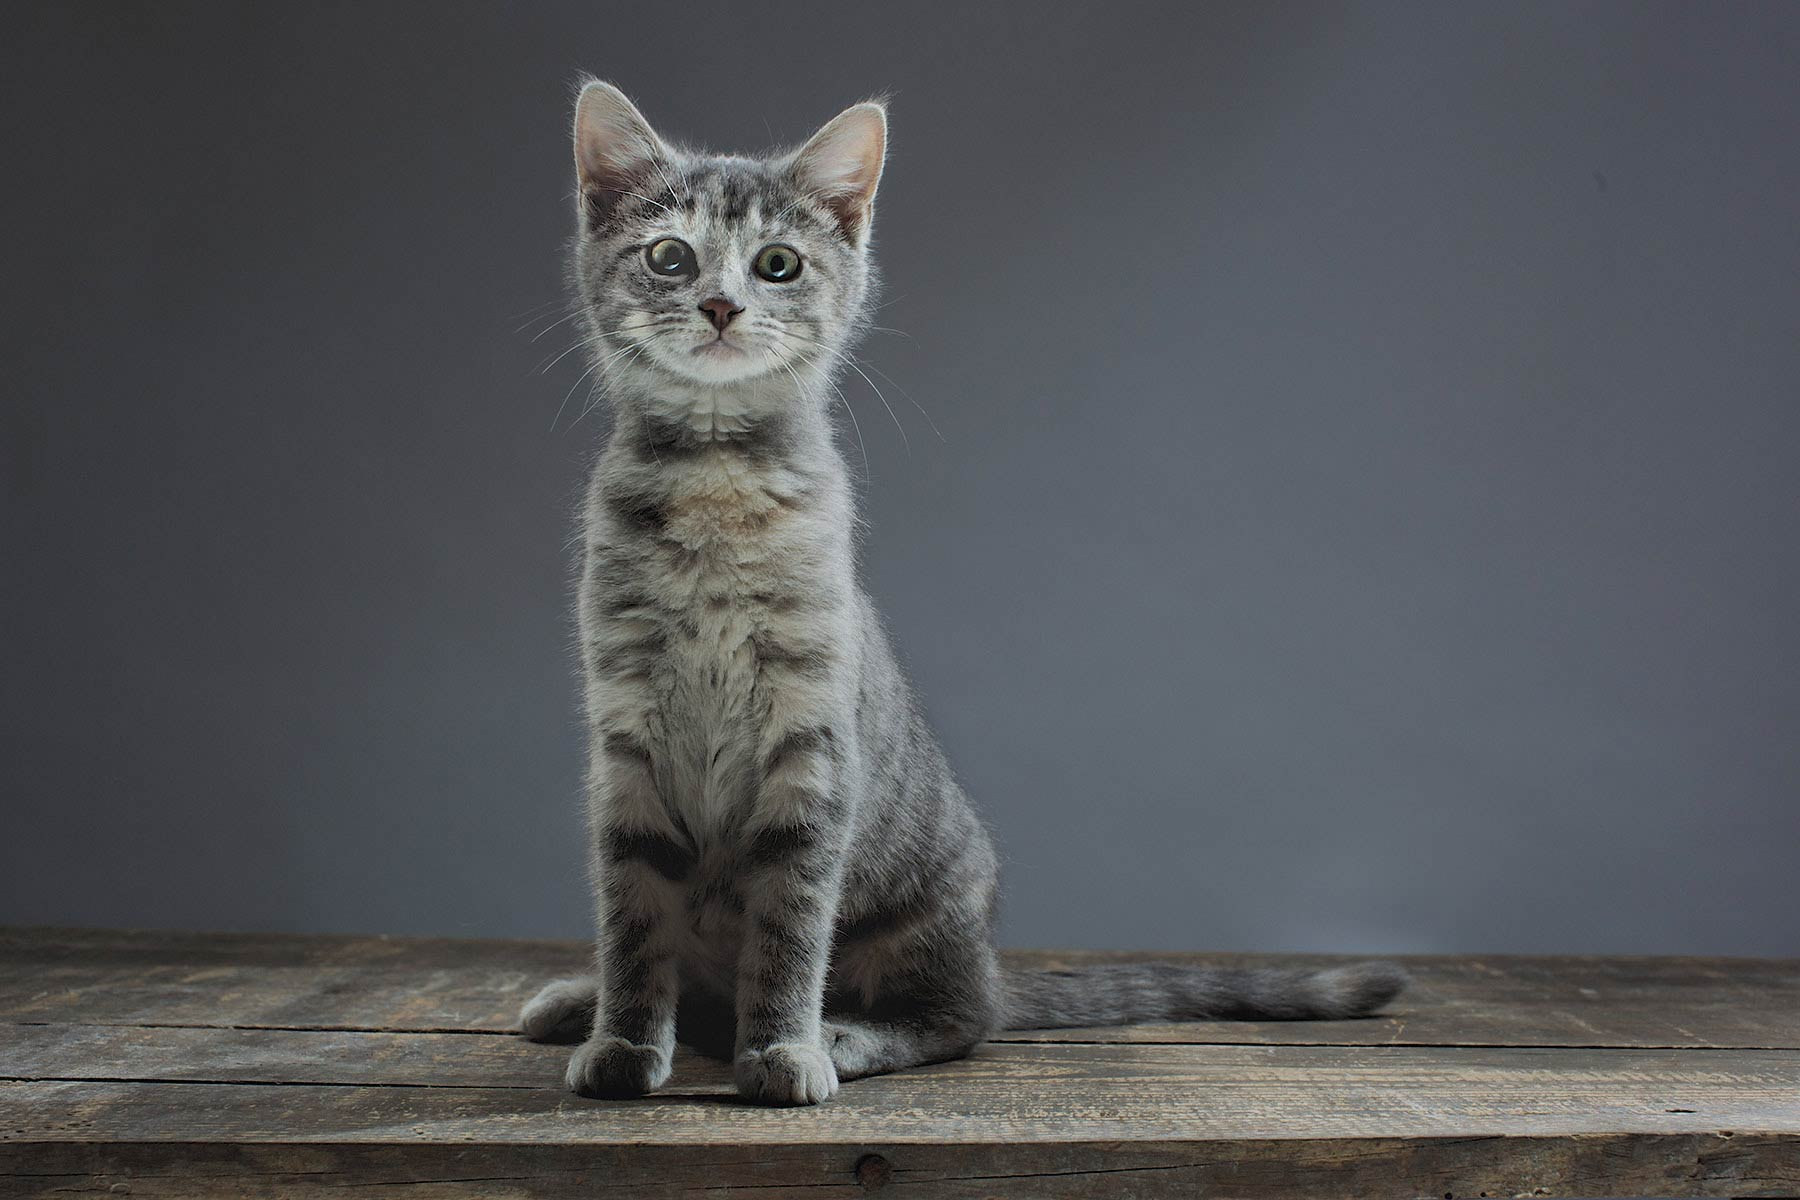 A-studio-portrait-of-a-Gray-Kitten-against-a-black-background